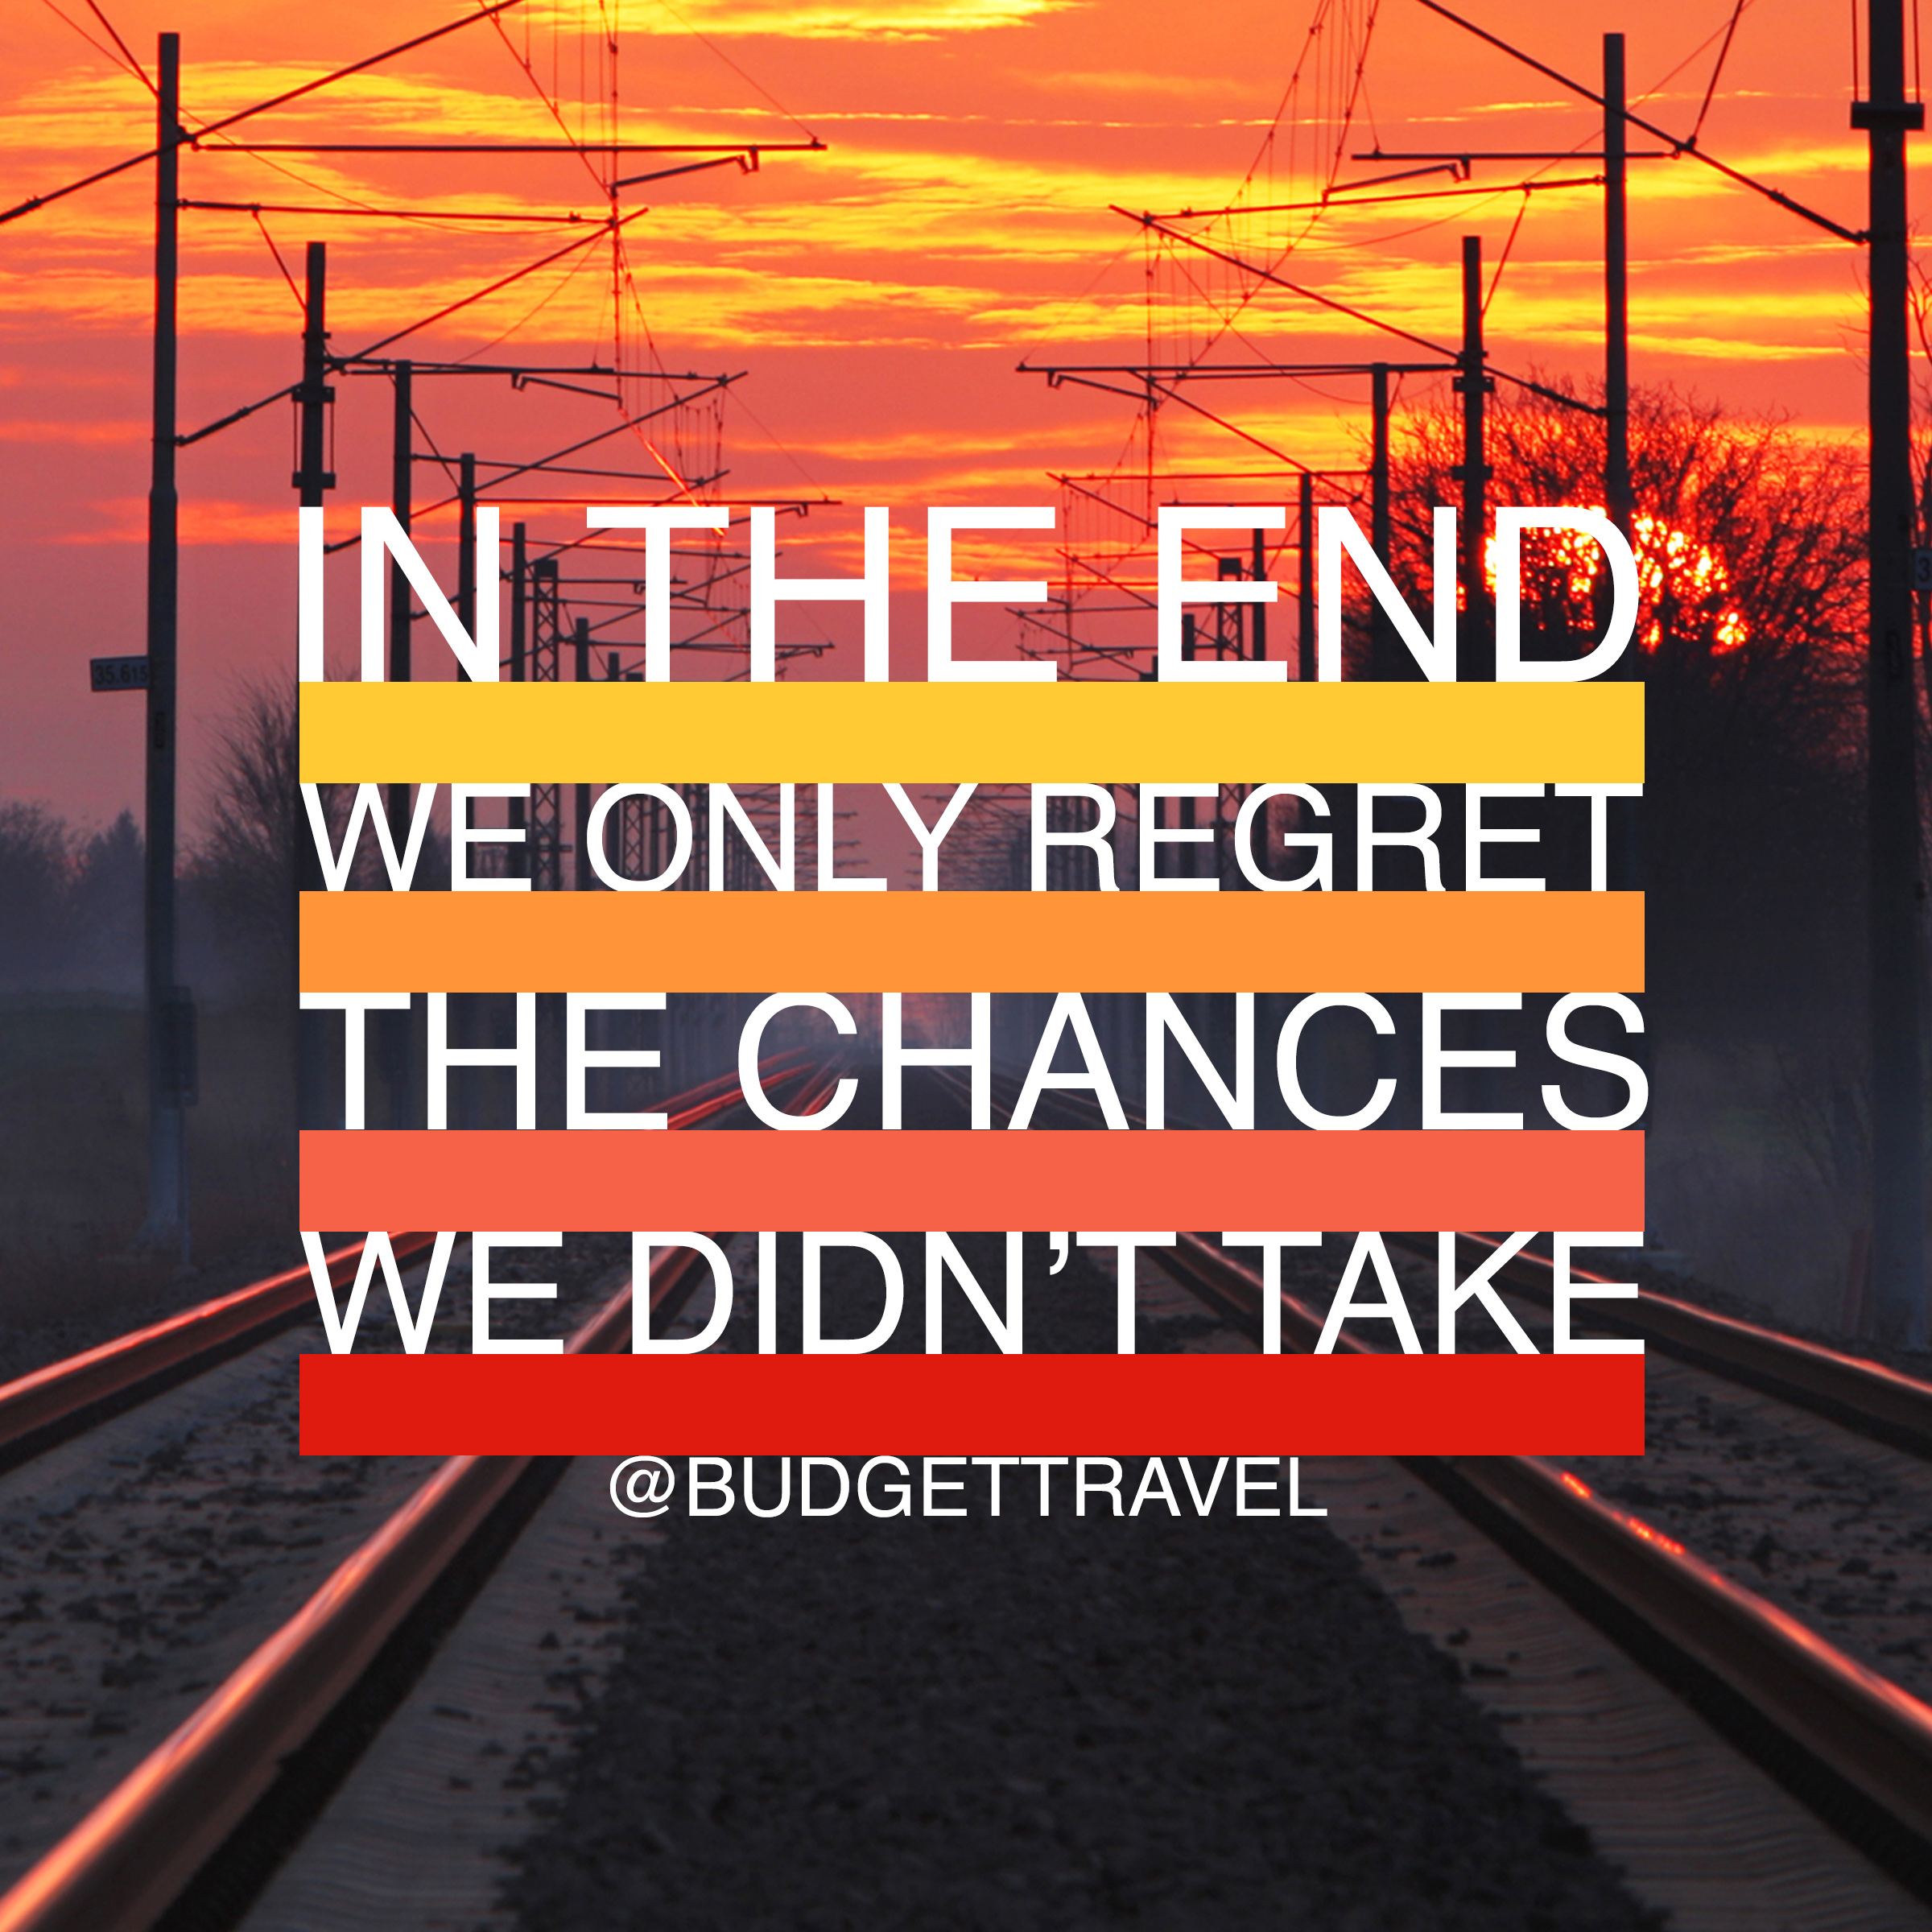 in-the-end-we-only-regret-travel-quote-472015-19846_original